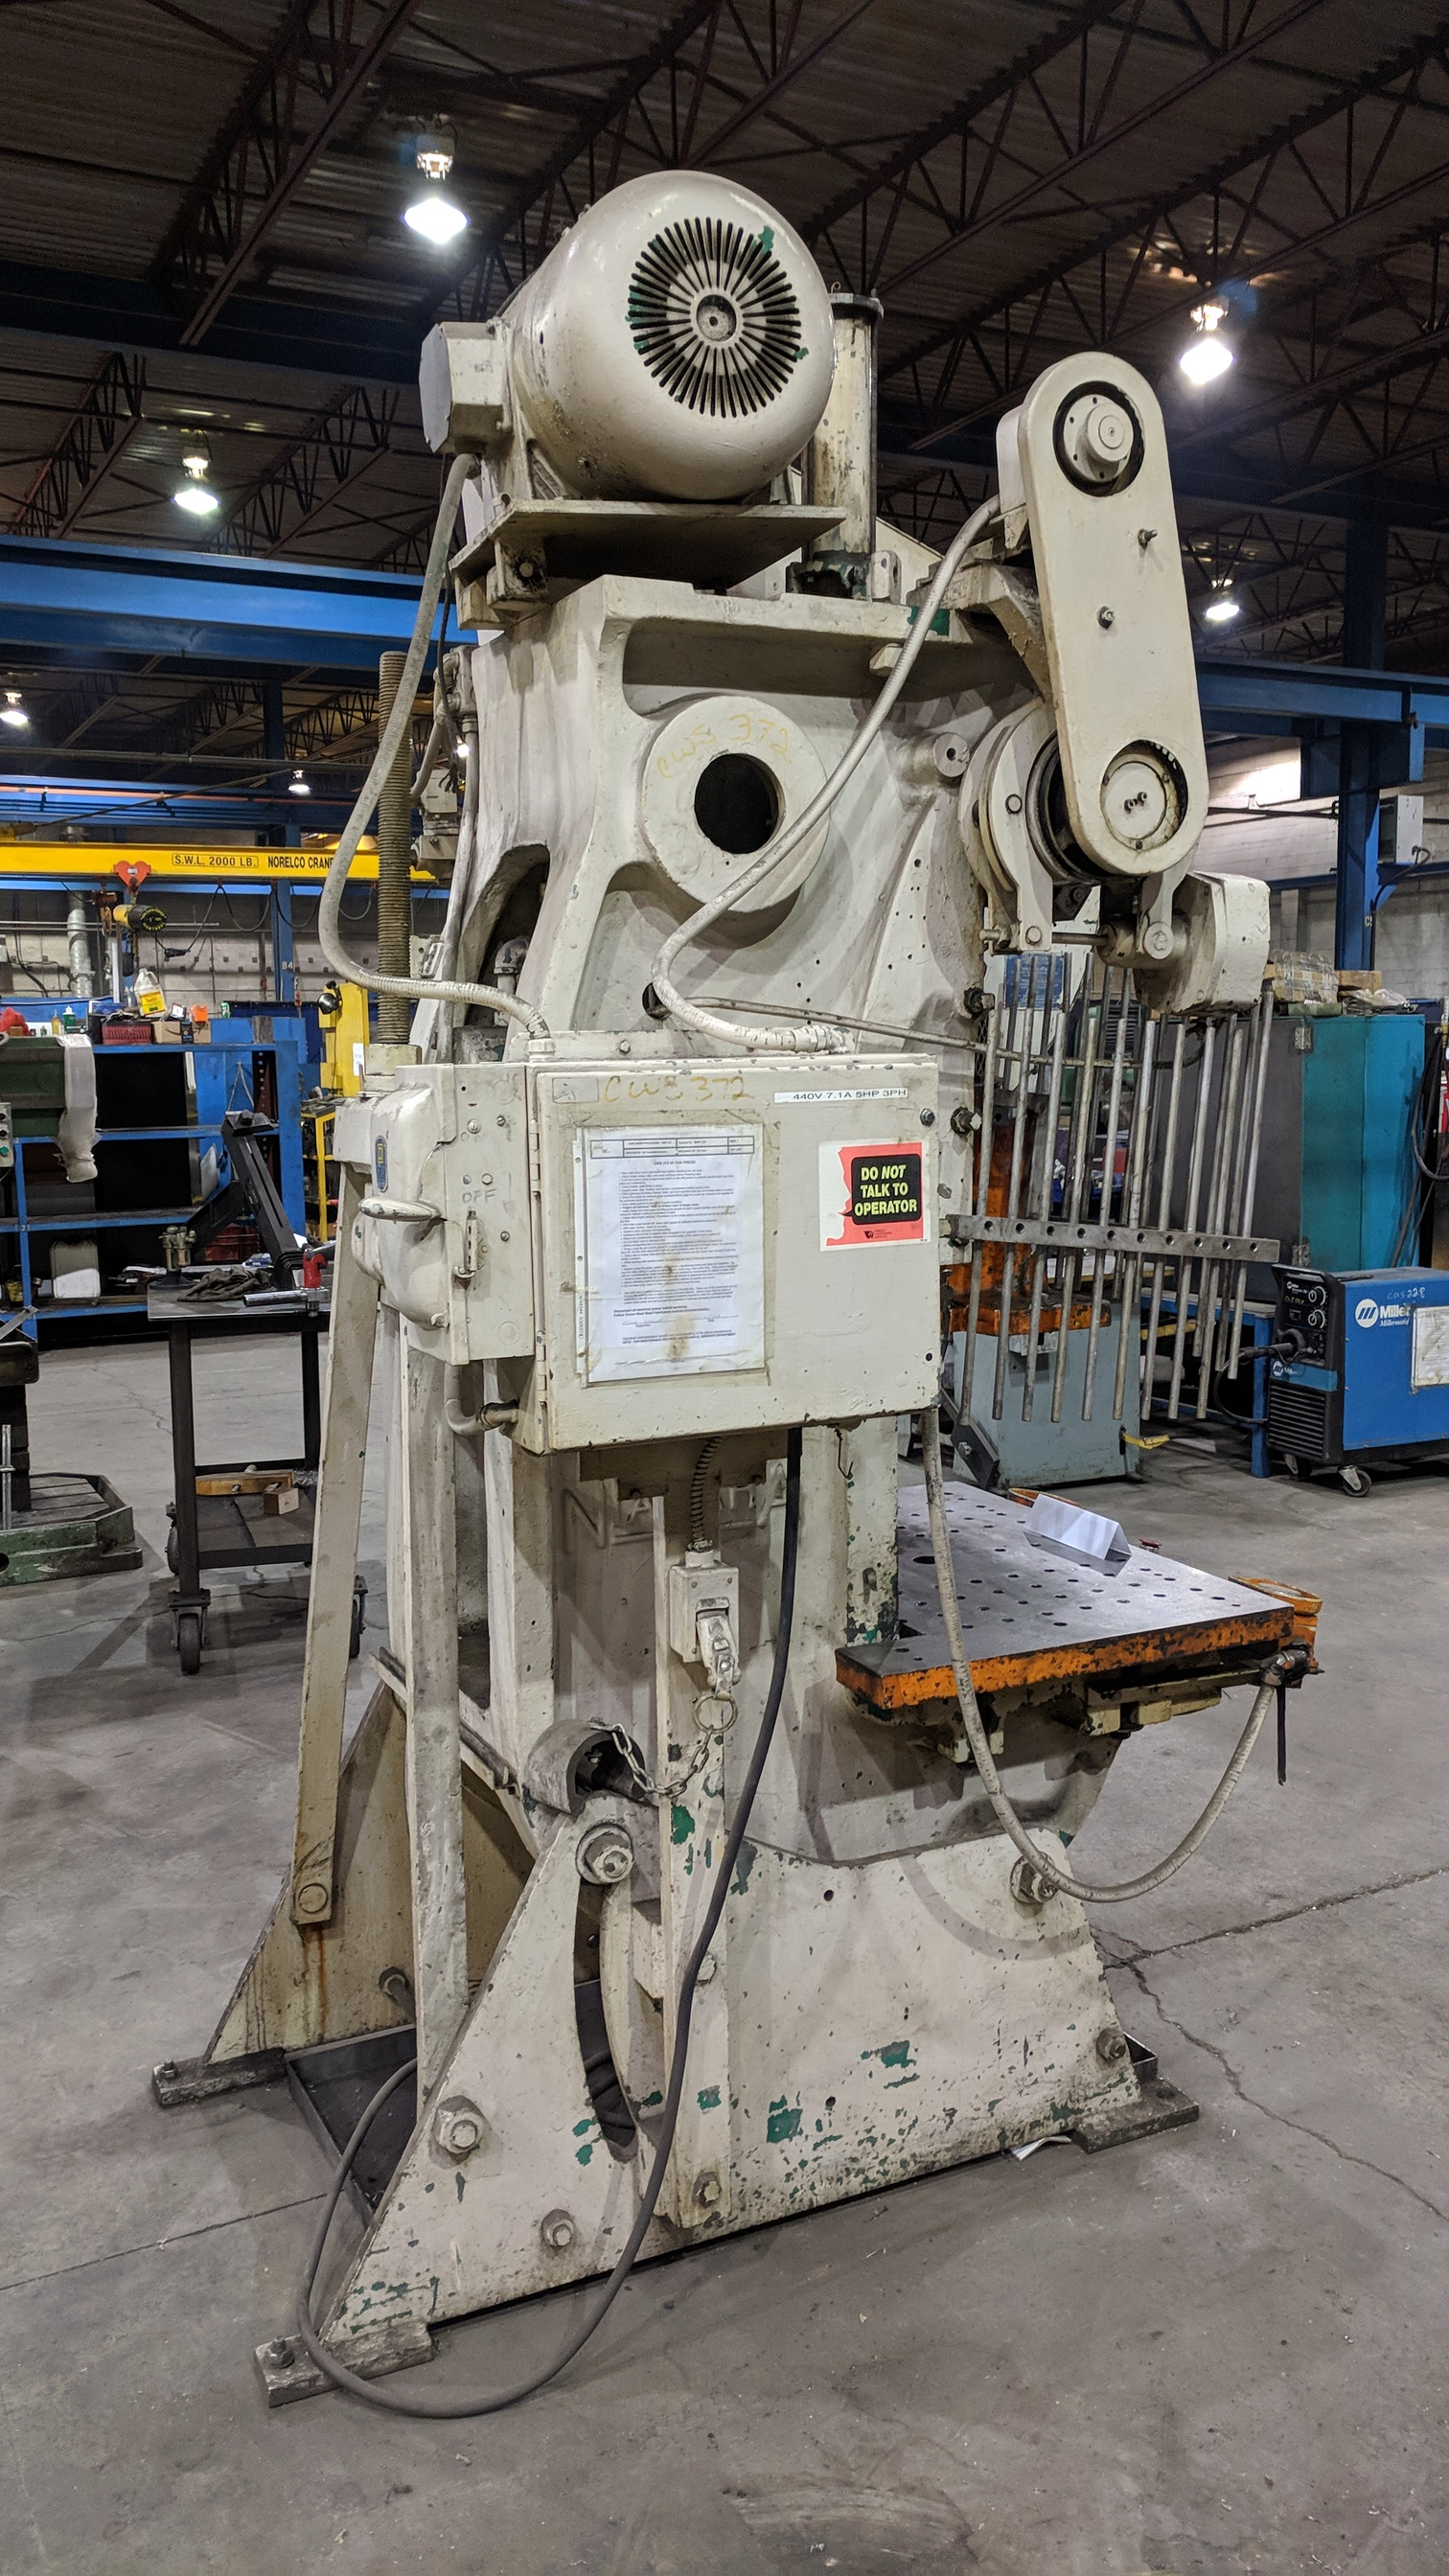 "Lot 2 - NIAGARA A 3-1/2 45 TON CAPACITY OBI PUNCH PRESS WITH 36""X24"" BED, 18""X16"" RAM, 16"" SHUT HEIGHT, 6"""